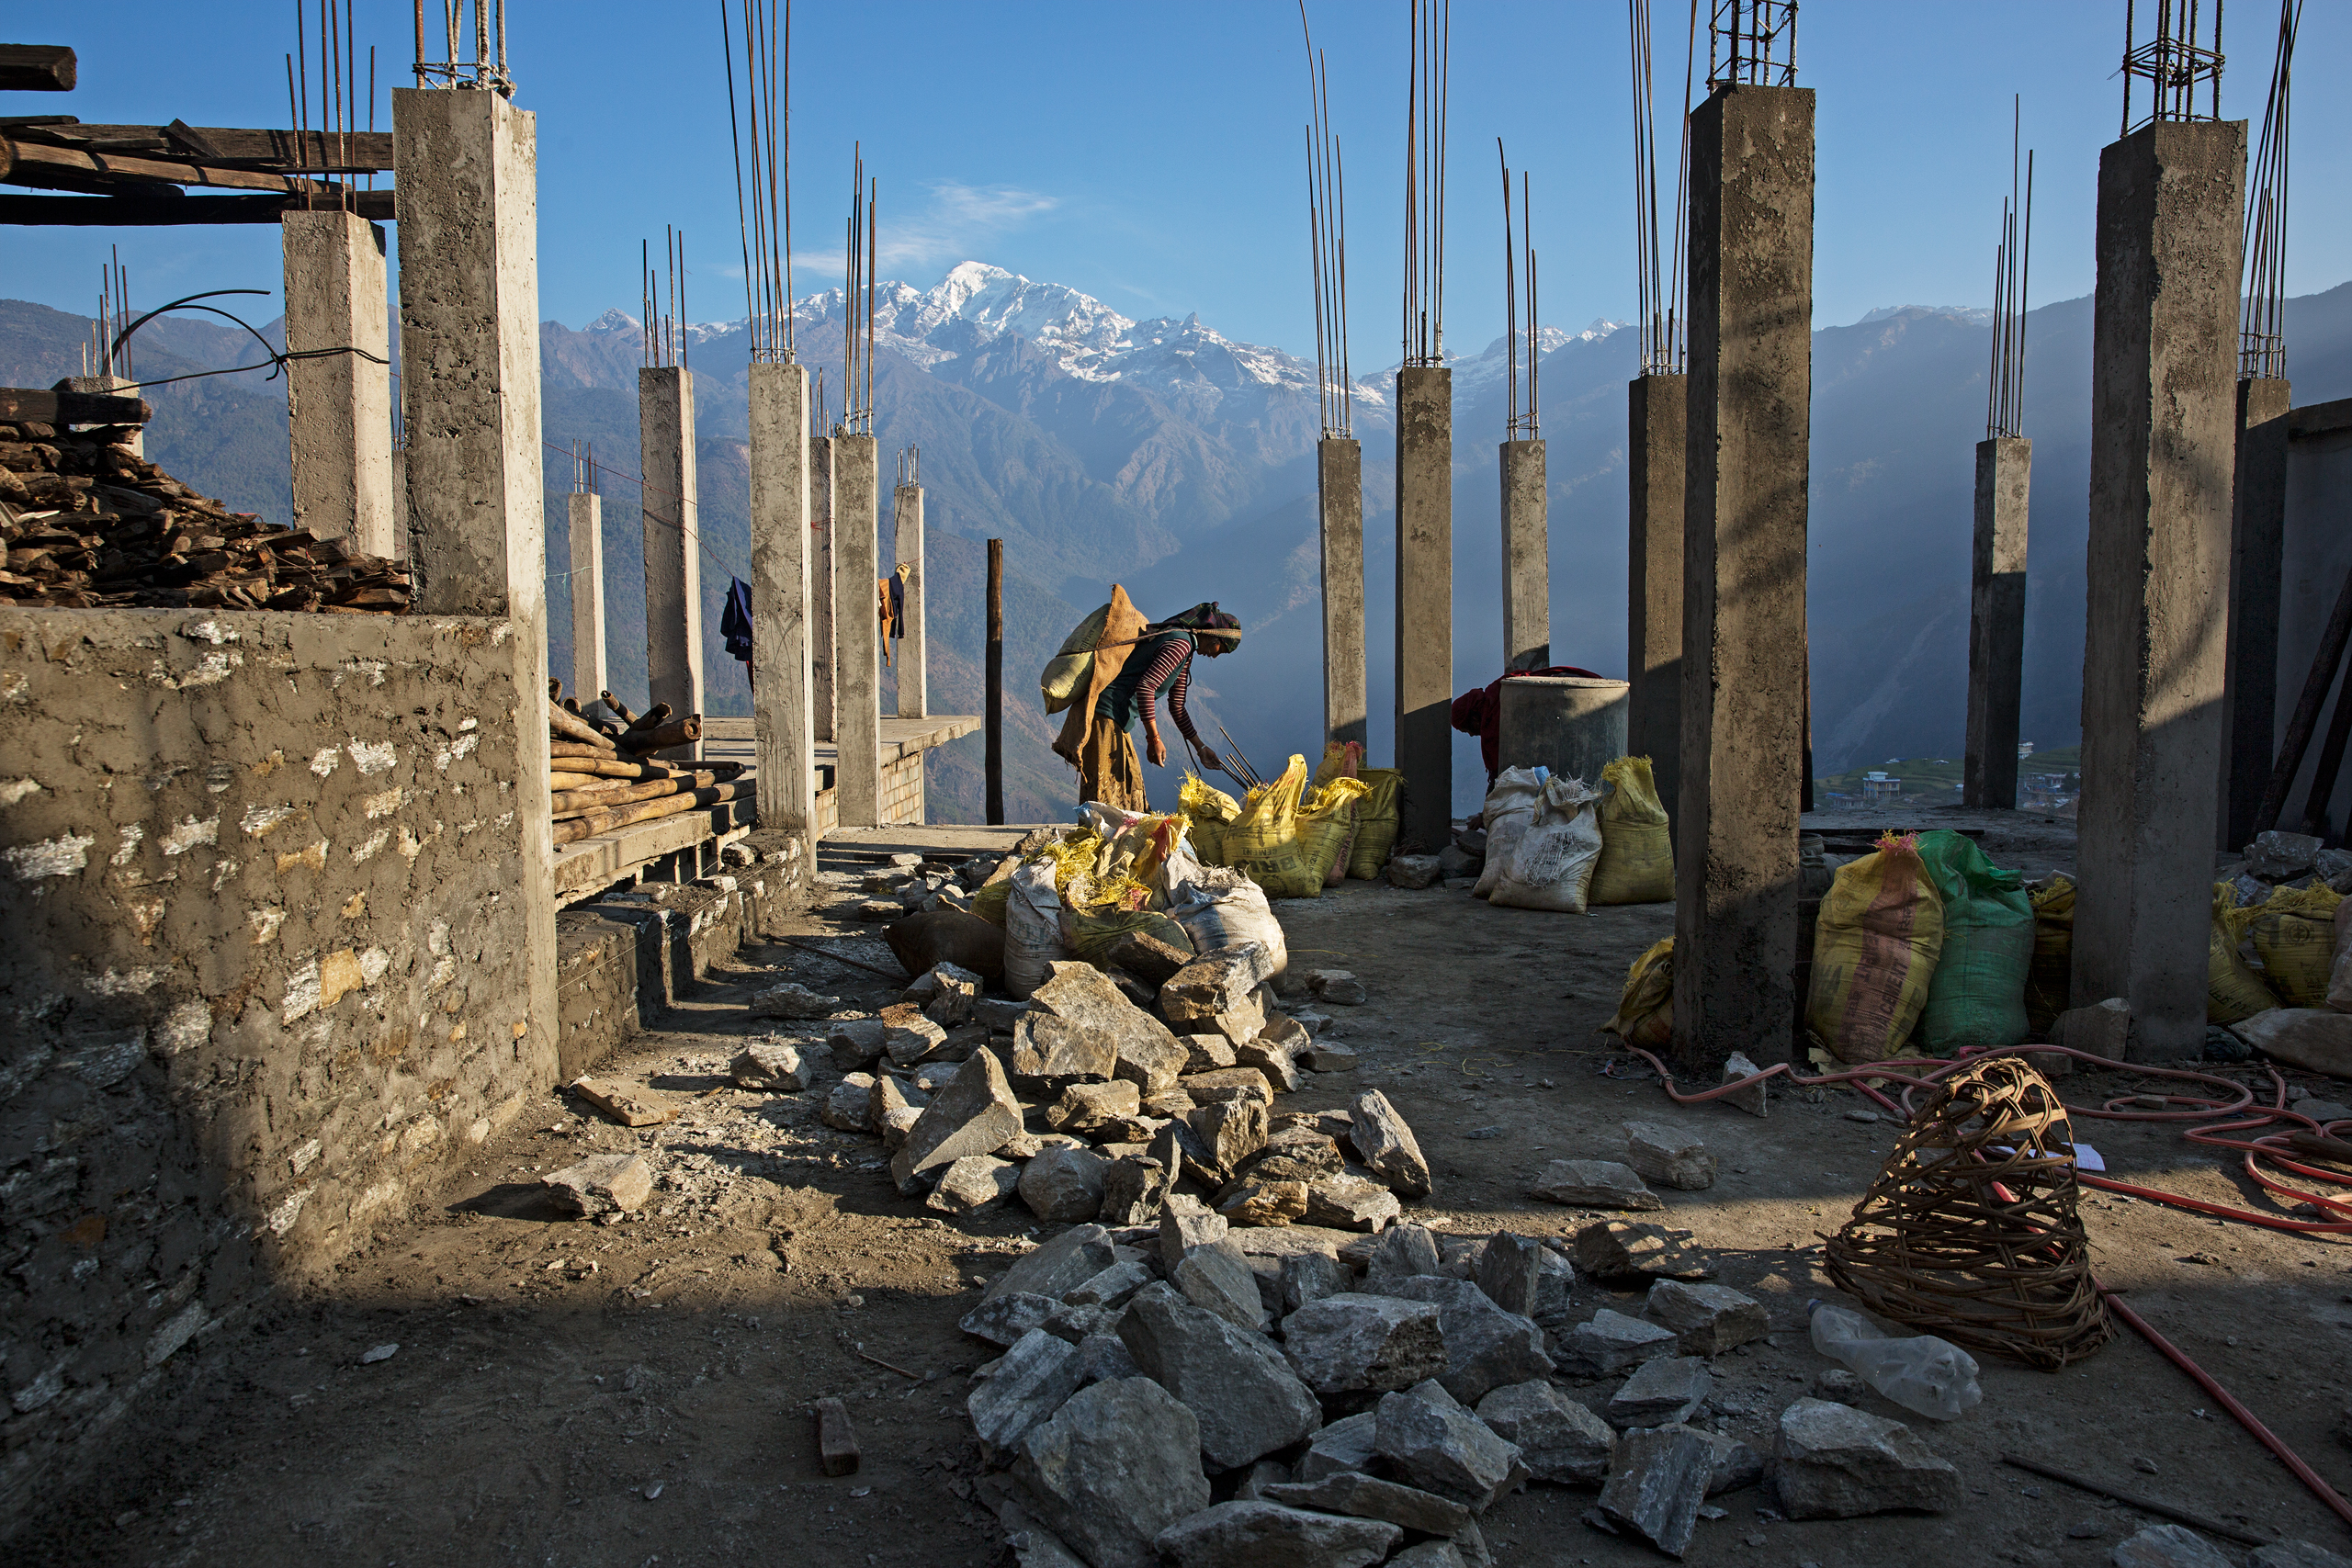 The Himalayan mountain village of Barpak was at the epicenter of the quakes